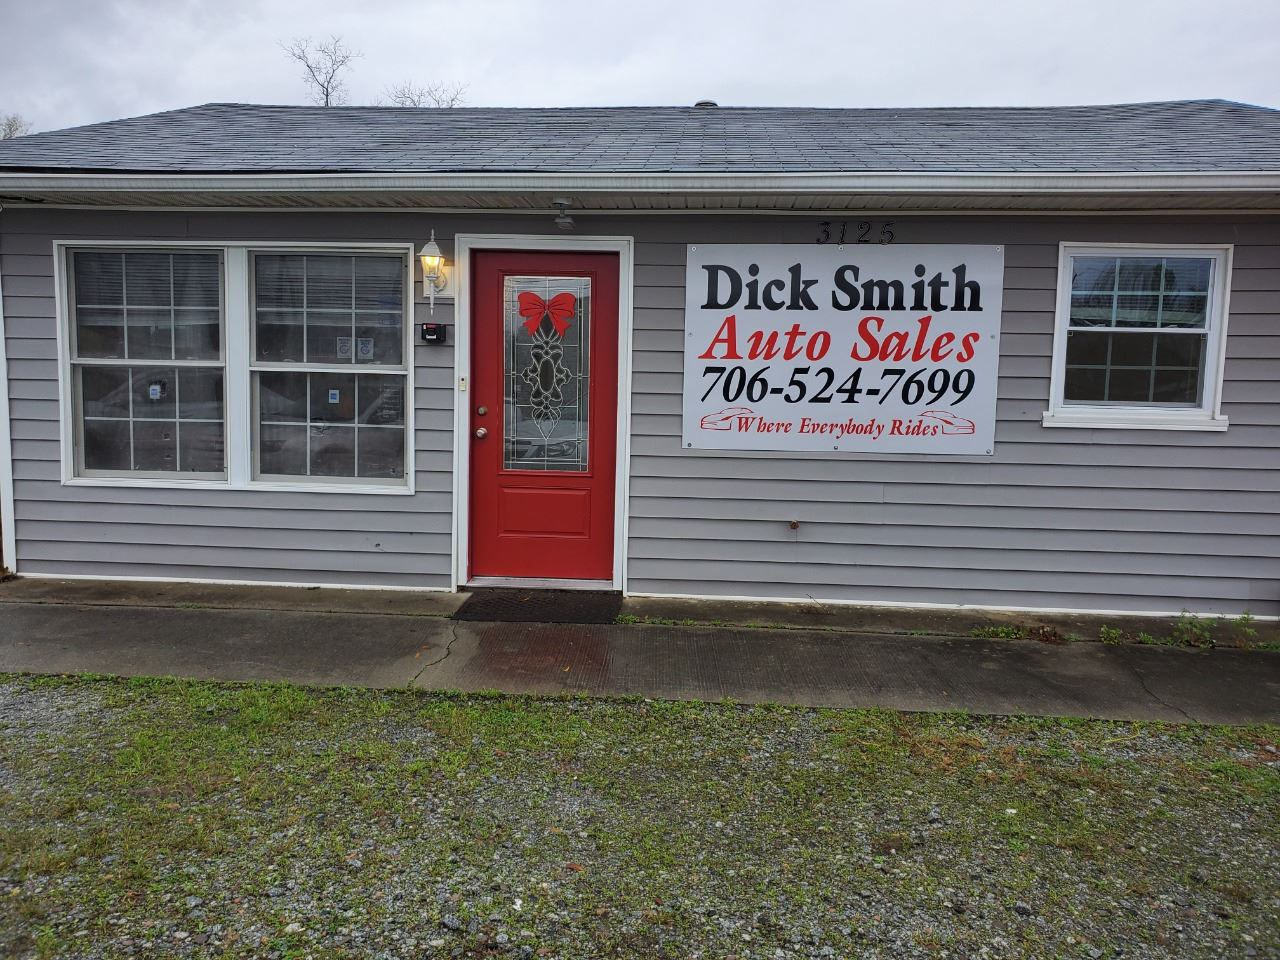 Dick Smith Auto Sales